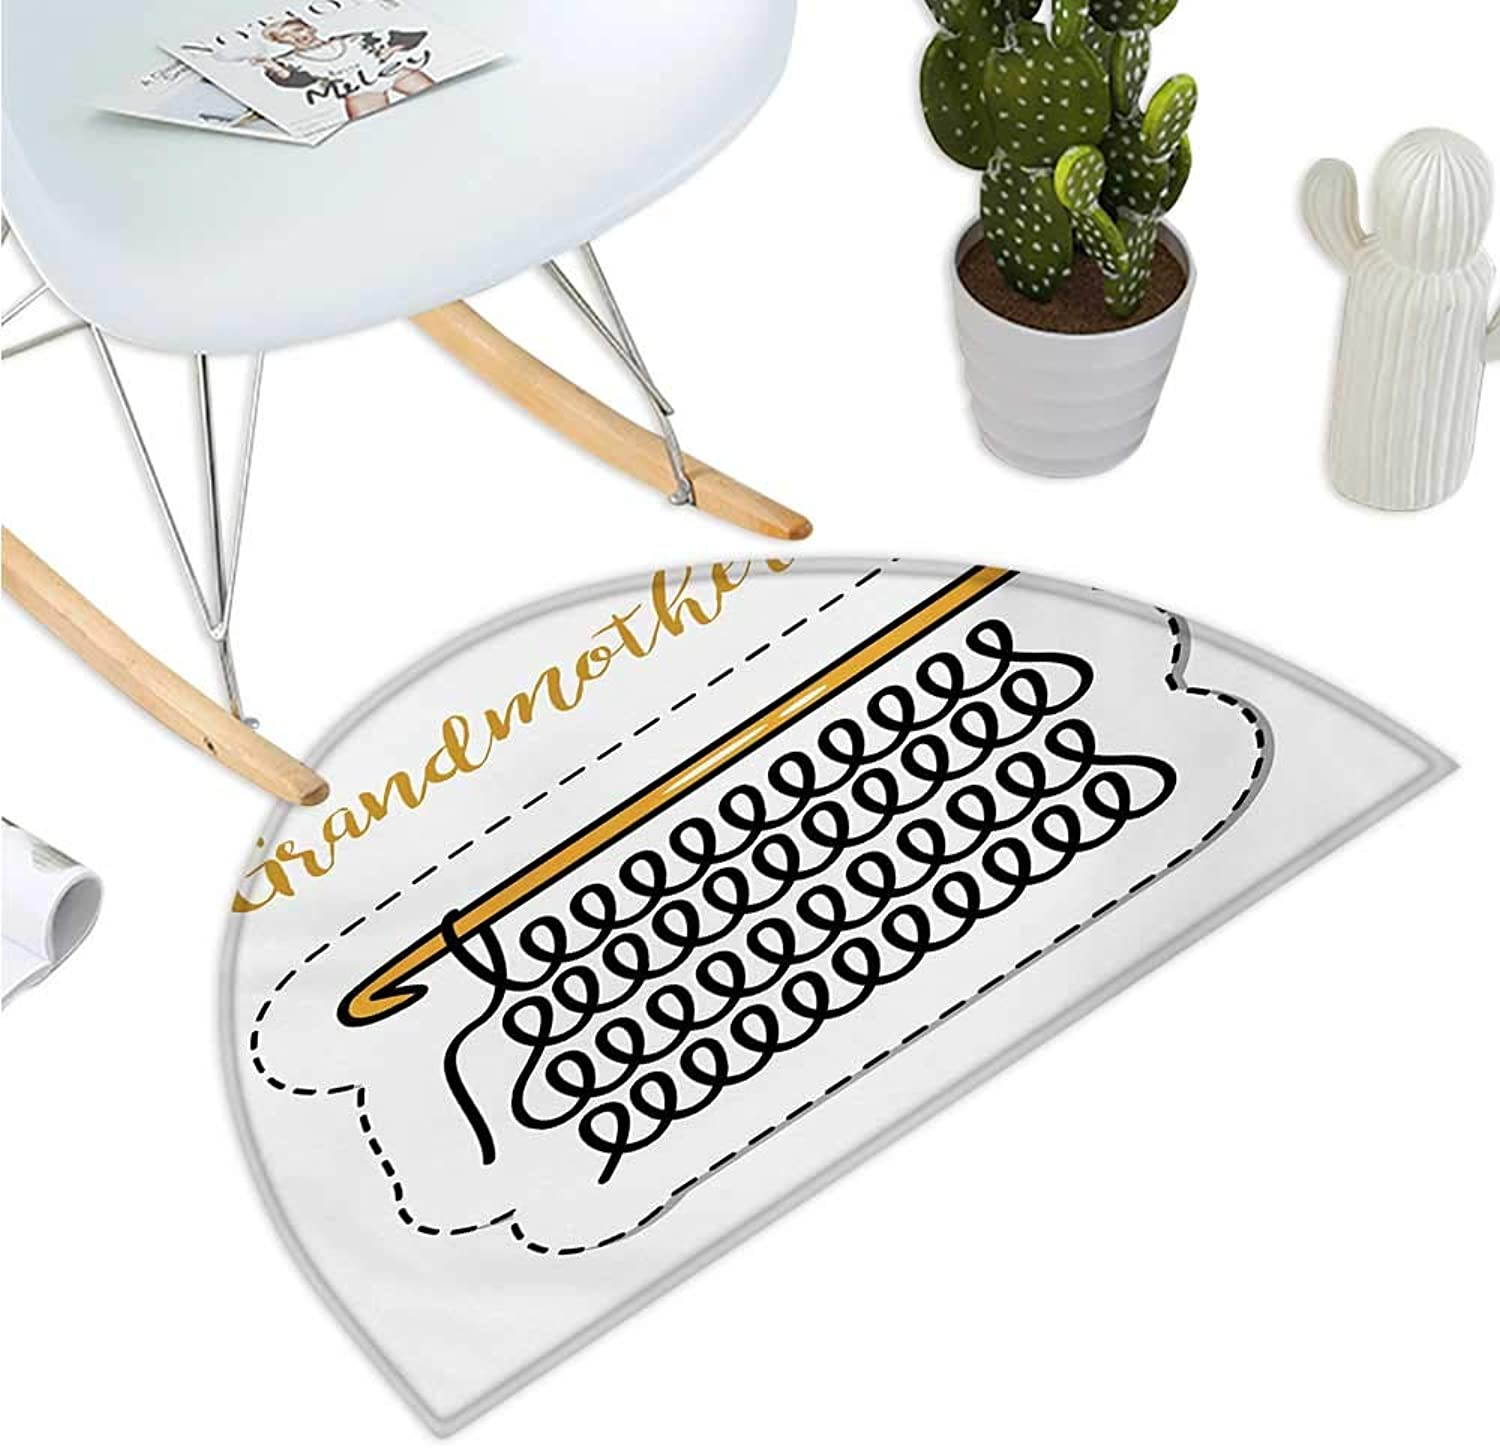 Grandma Semicircular Cushion Knitting Design and Hand Lettering Illustration with Vintage Inspirations Bathroom Mat H 39.3  xD 59  Marigold Black White